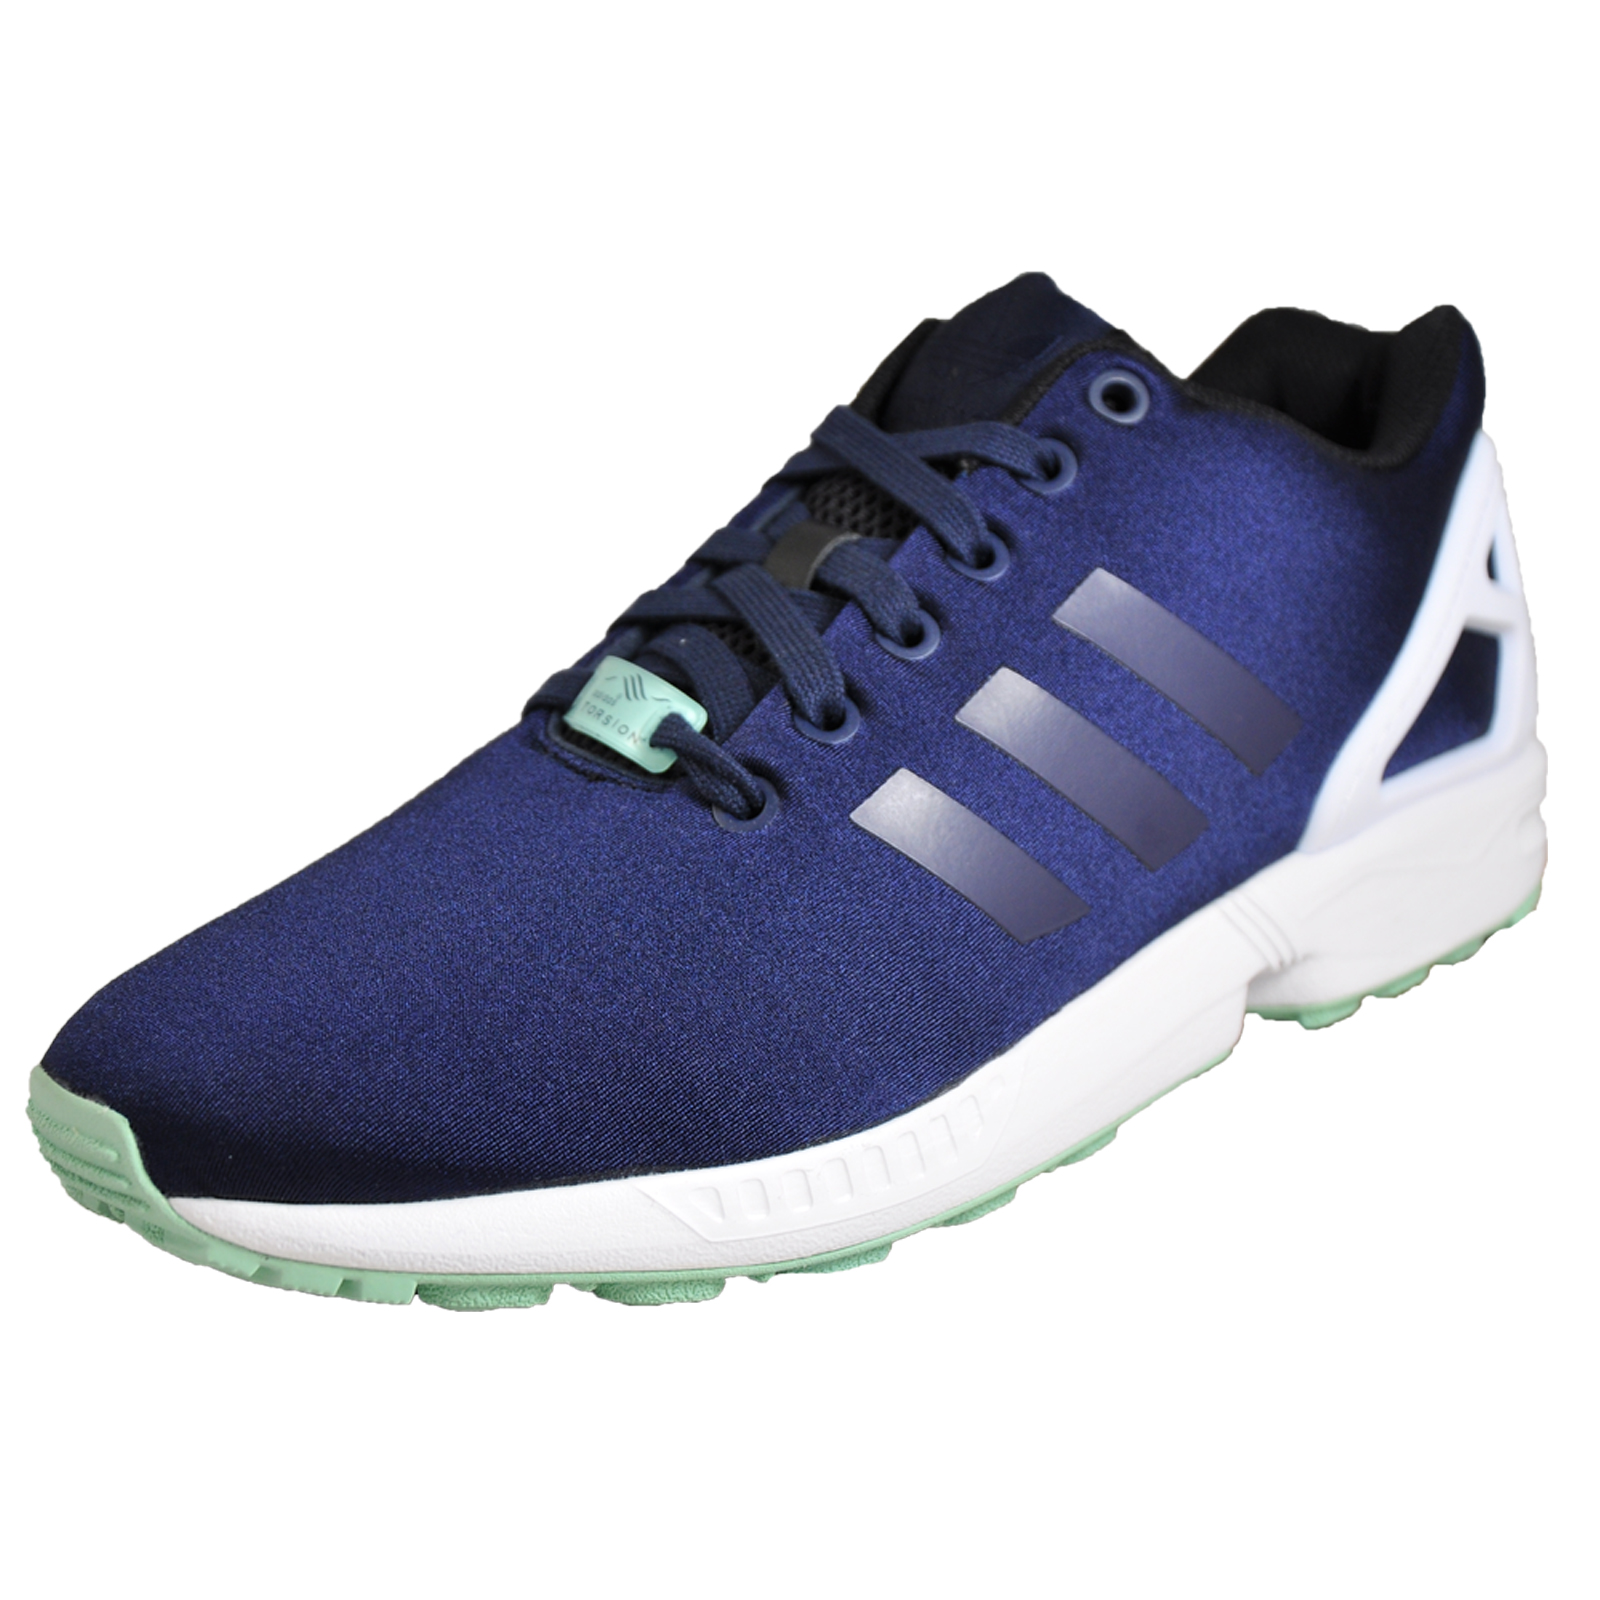 Adidas Originals ZX Flux Men s Casual Retro Gym Fashion Trainers Navy 3fc5c33730a5